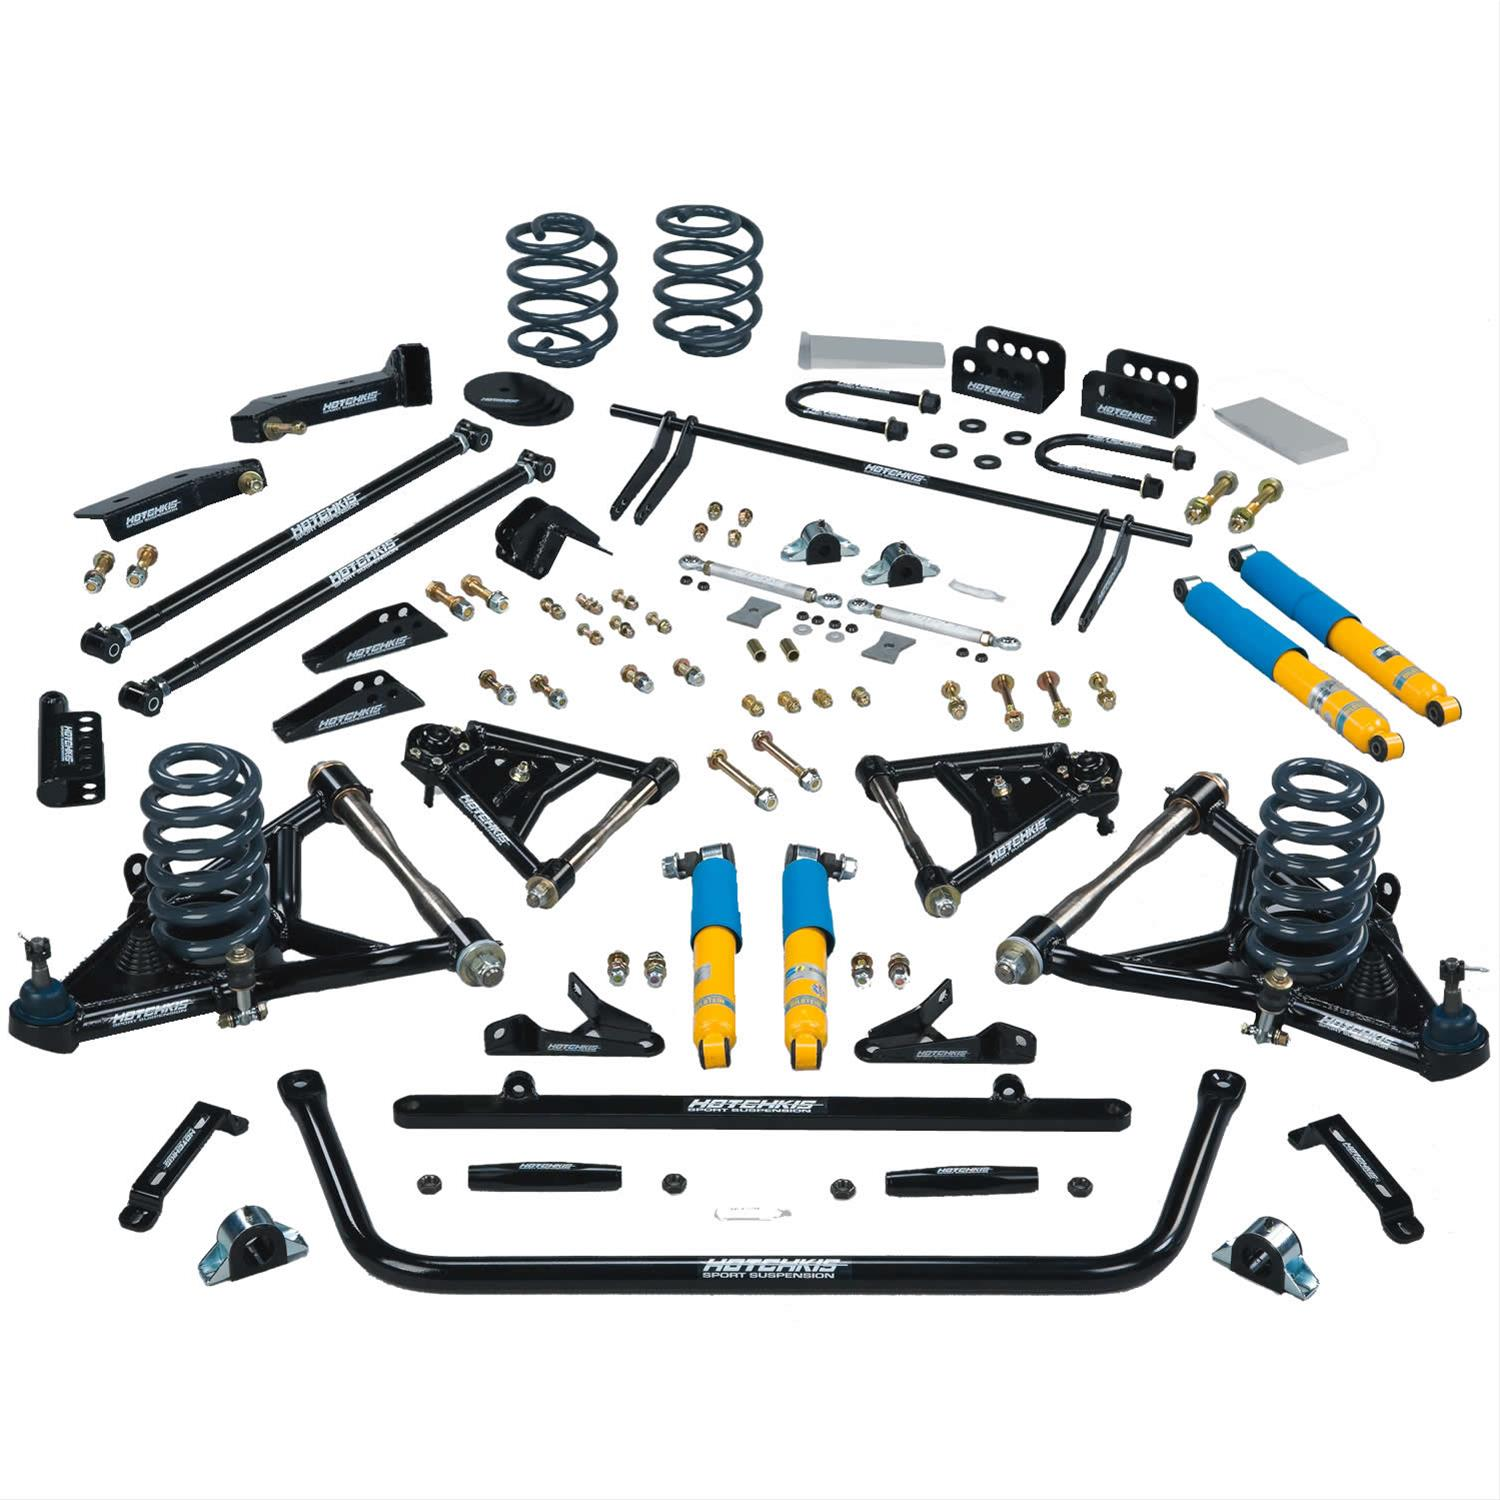 Hotchkis Sport Suspension Systems Parts And Complete: Hotchkis Sport Suspension TVS Systems 80390